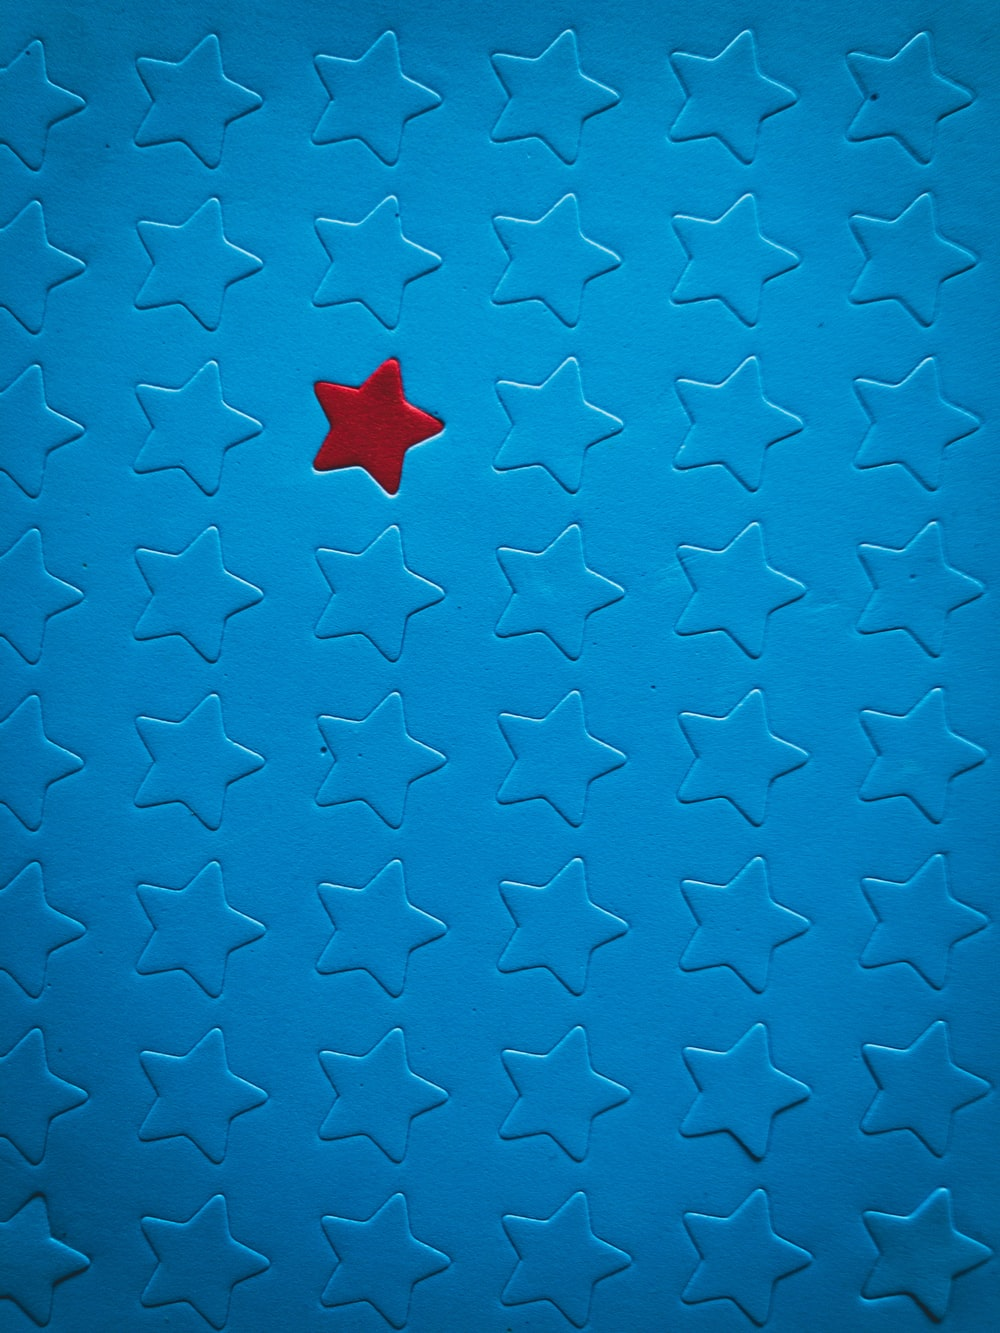 blue and white star print textile